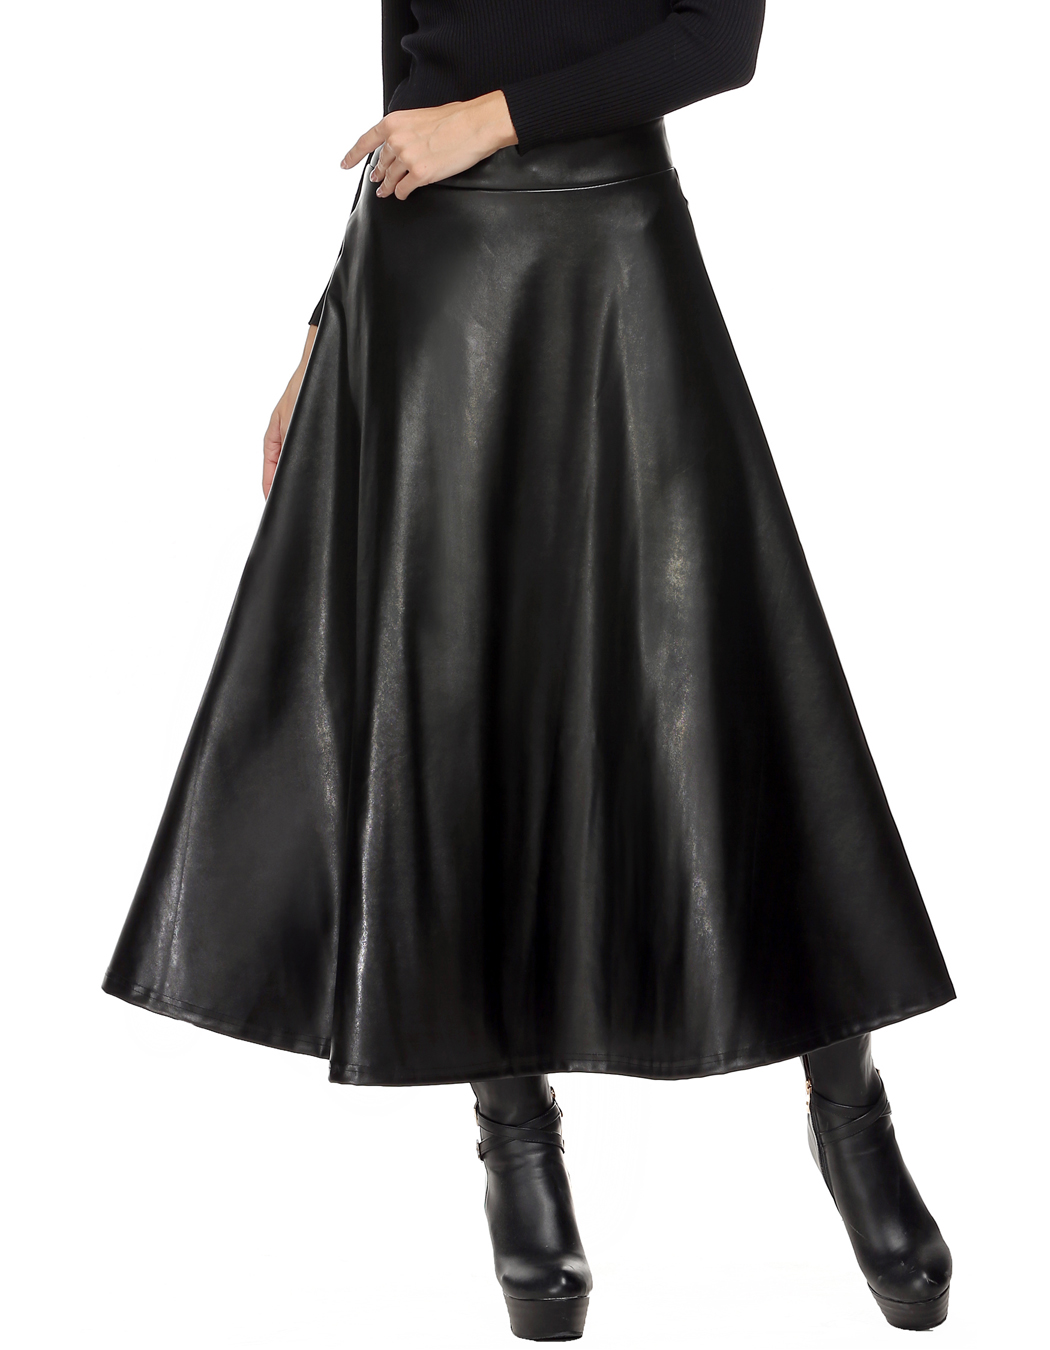 889442e45 ... maxi skirt directly from China long fashion skirts Suppliers: Zeagoo  Autumn Winter Women Skirt Fashion PU Leather Solid Long Skirt High Waist  Pleated ...